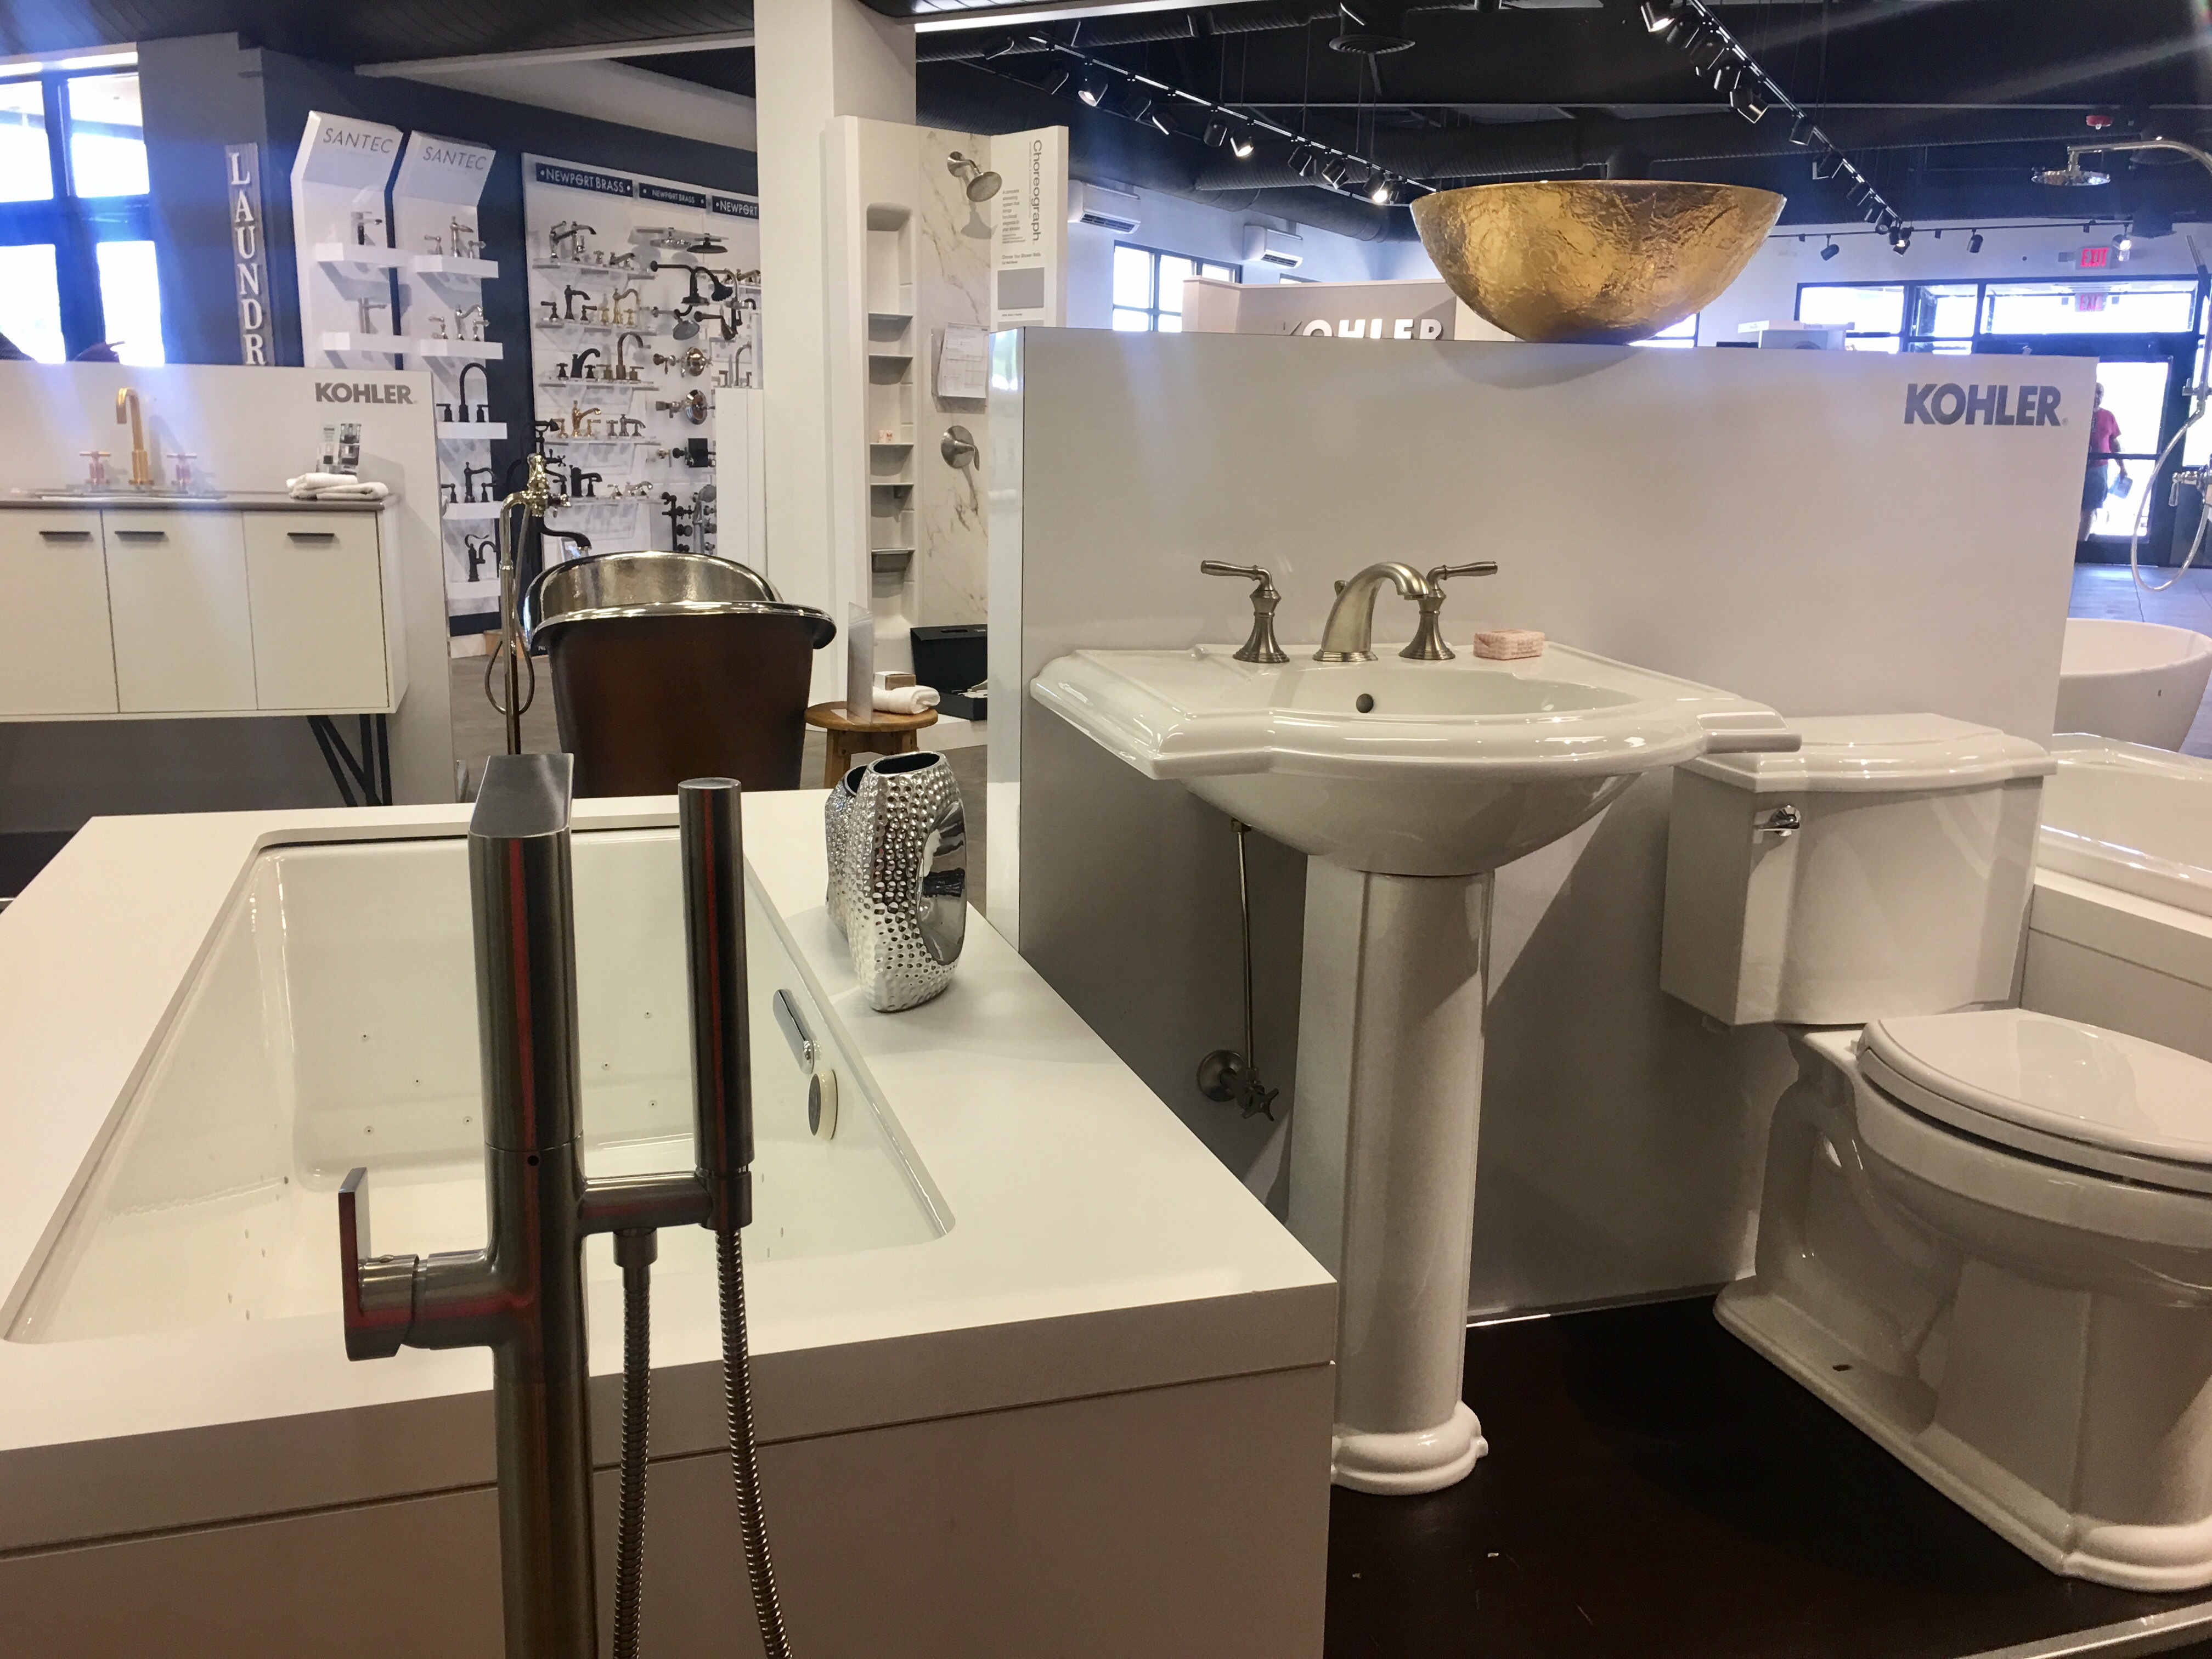 Bathroom Showrooms Greenville Sc kohler bathroom & kitchen products at gateway supply co. in